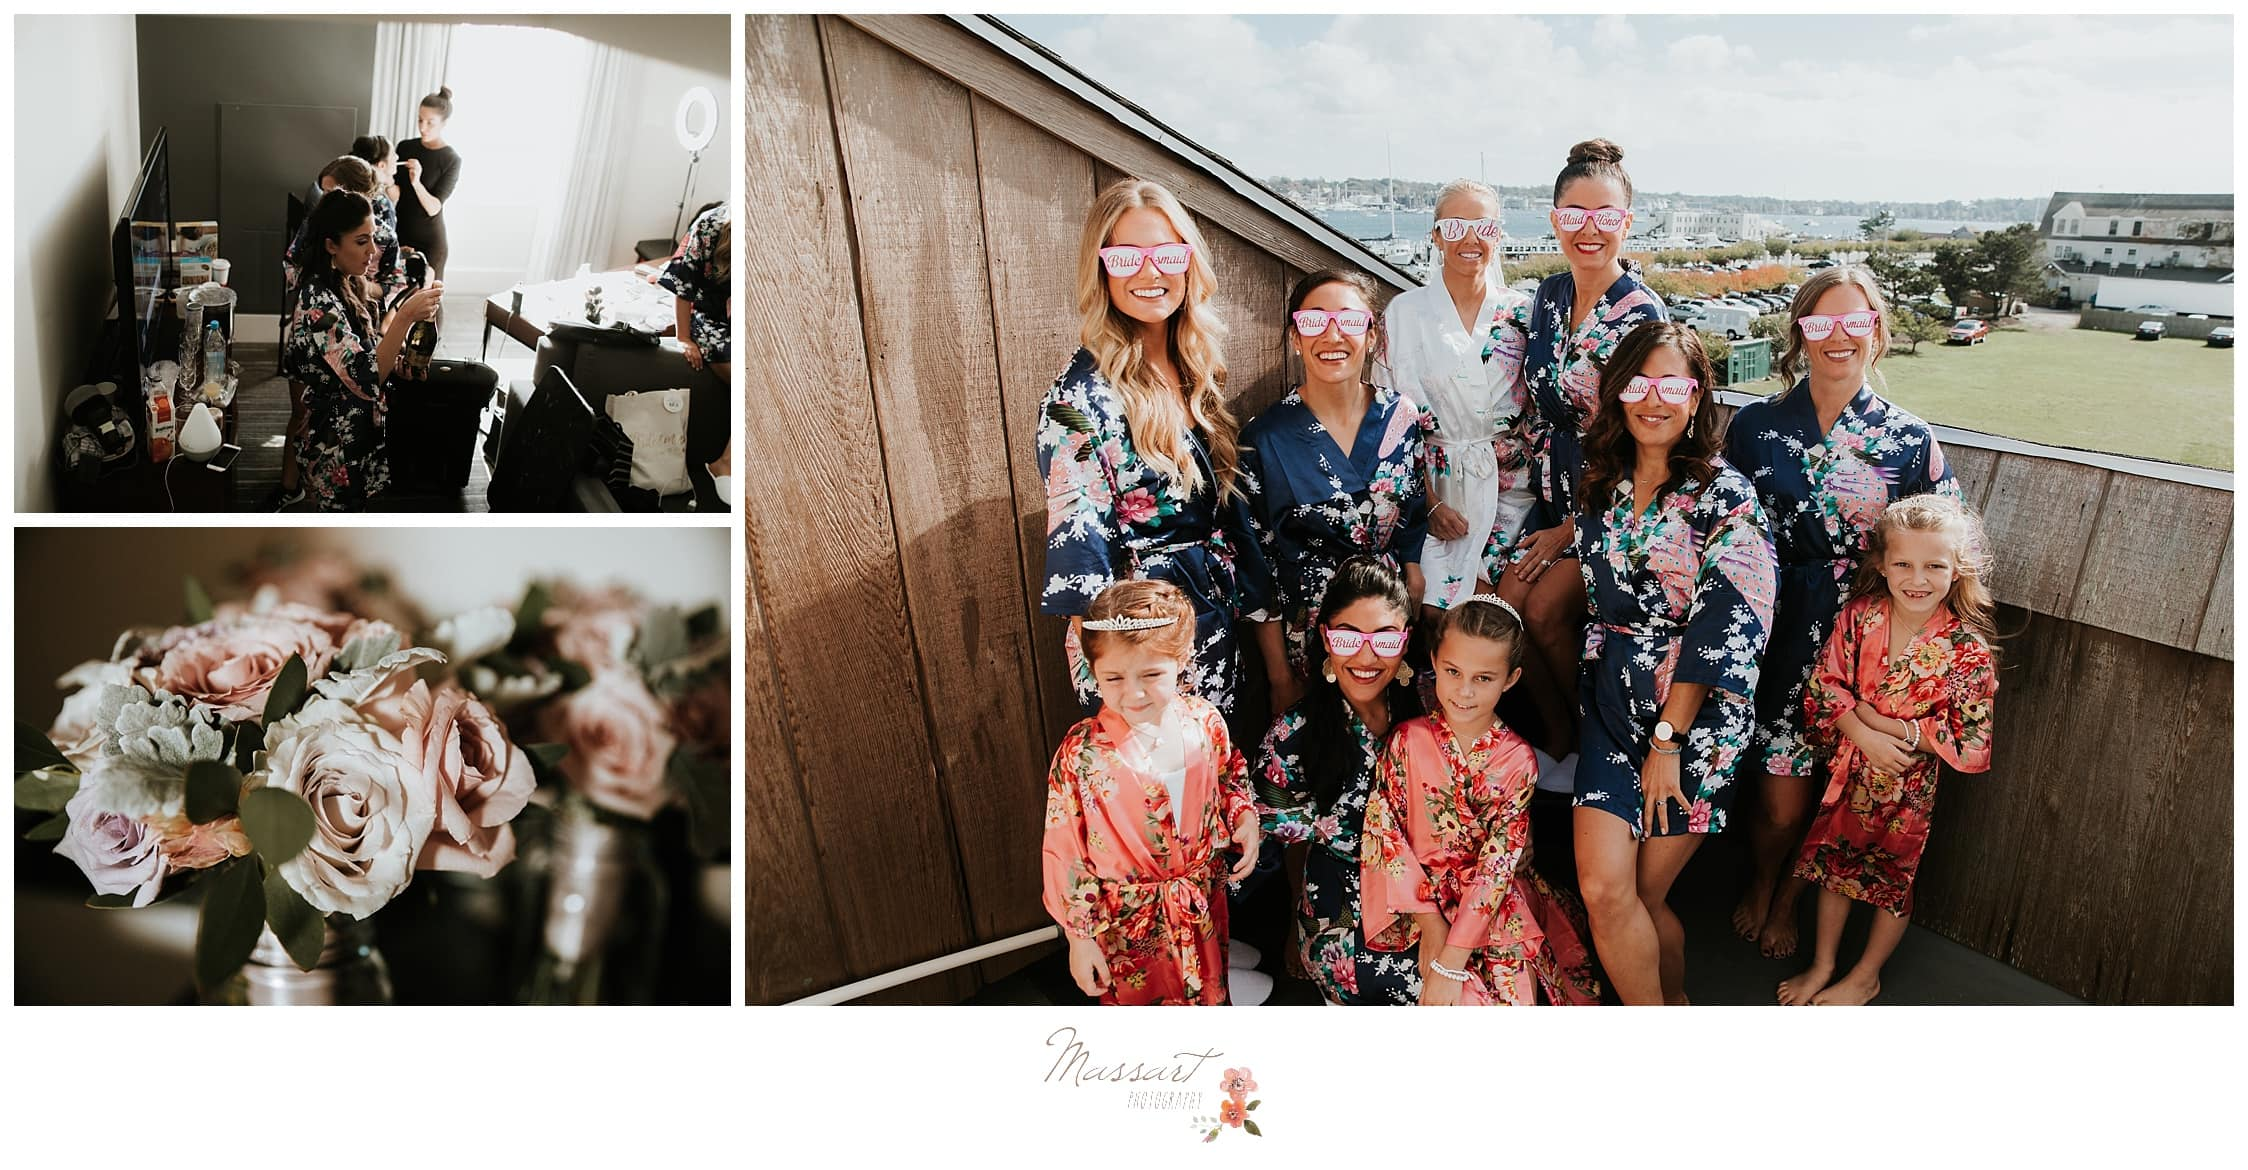 Bridal party and the bride wearing matching sunglasses before the wedding ceremony photographed by Massart Photography Rhode Island